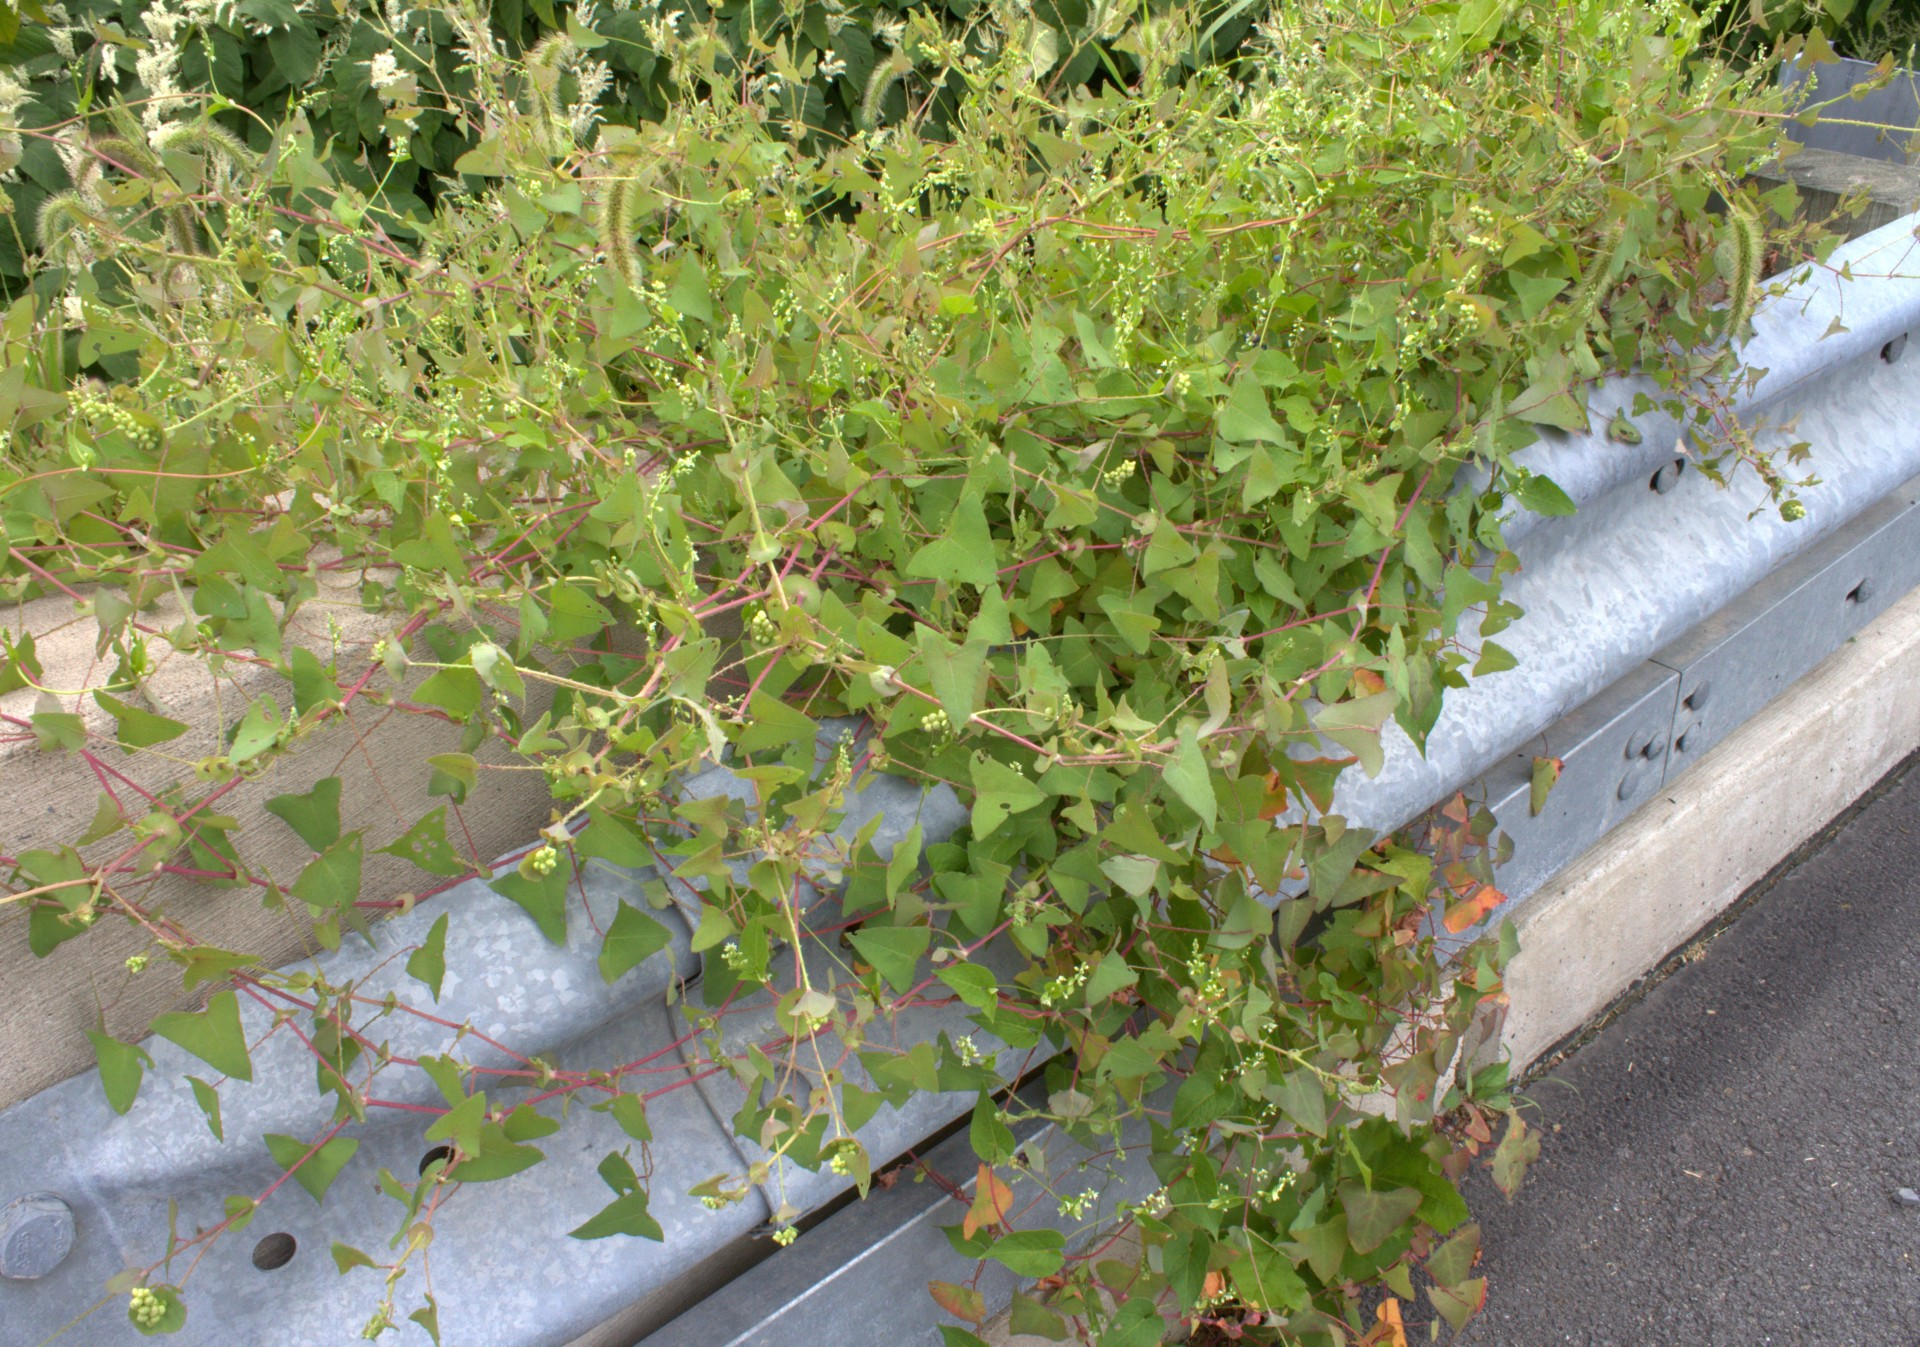 Posh Over Bridge Triangle Vine Weed Blue Berries Is That A Weed Vine Sequel Adam Is That A Weed Vine Tear Thumb Vine Scrambles Up houzz-02 Is That A Weed Vine